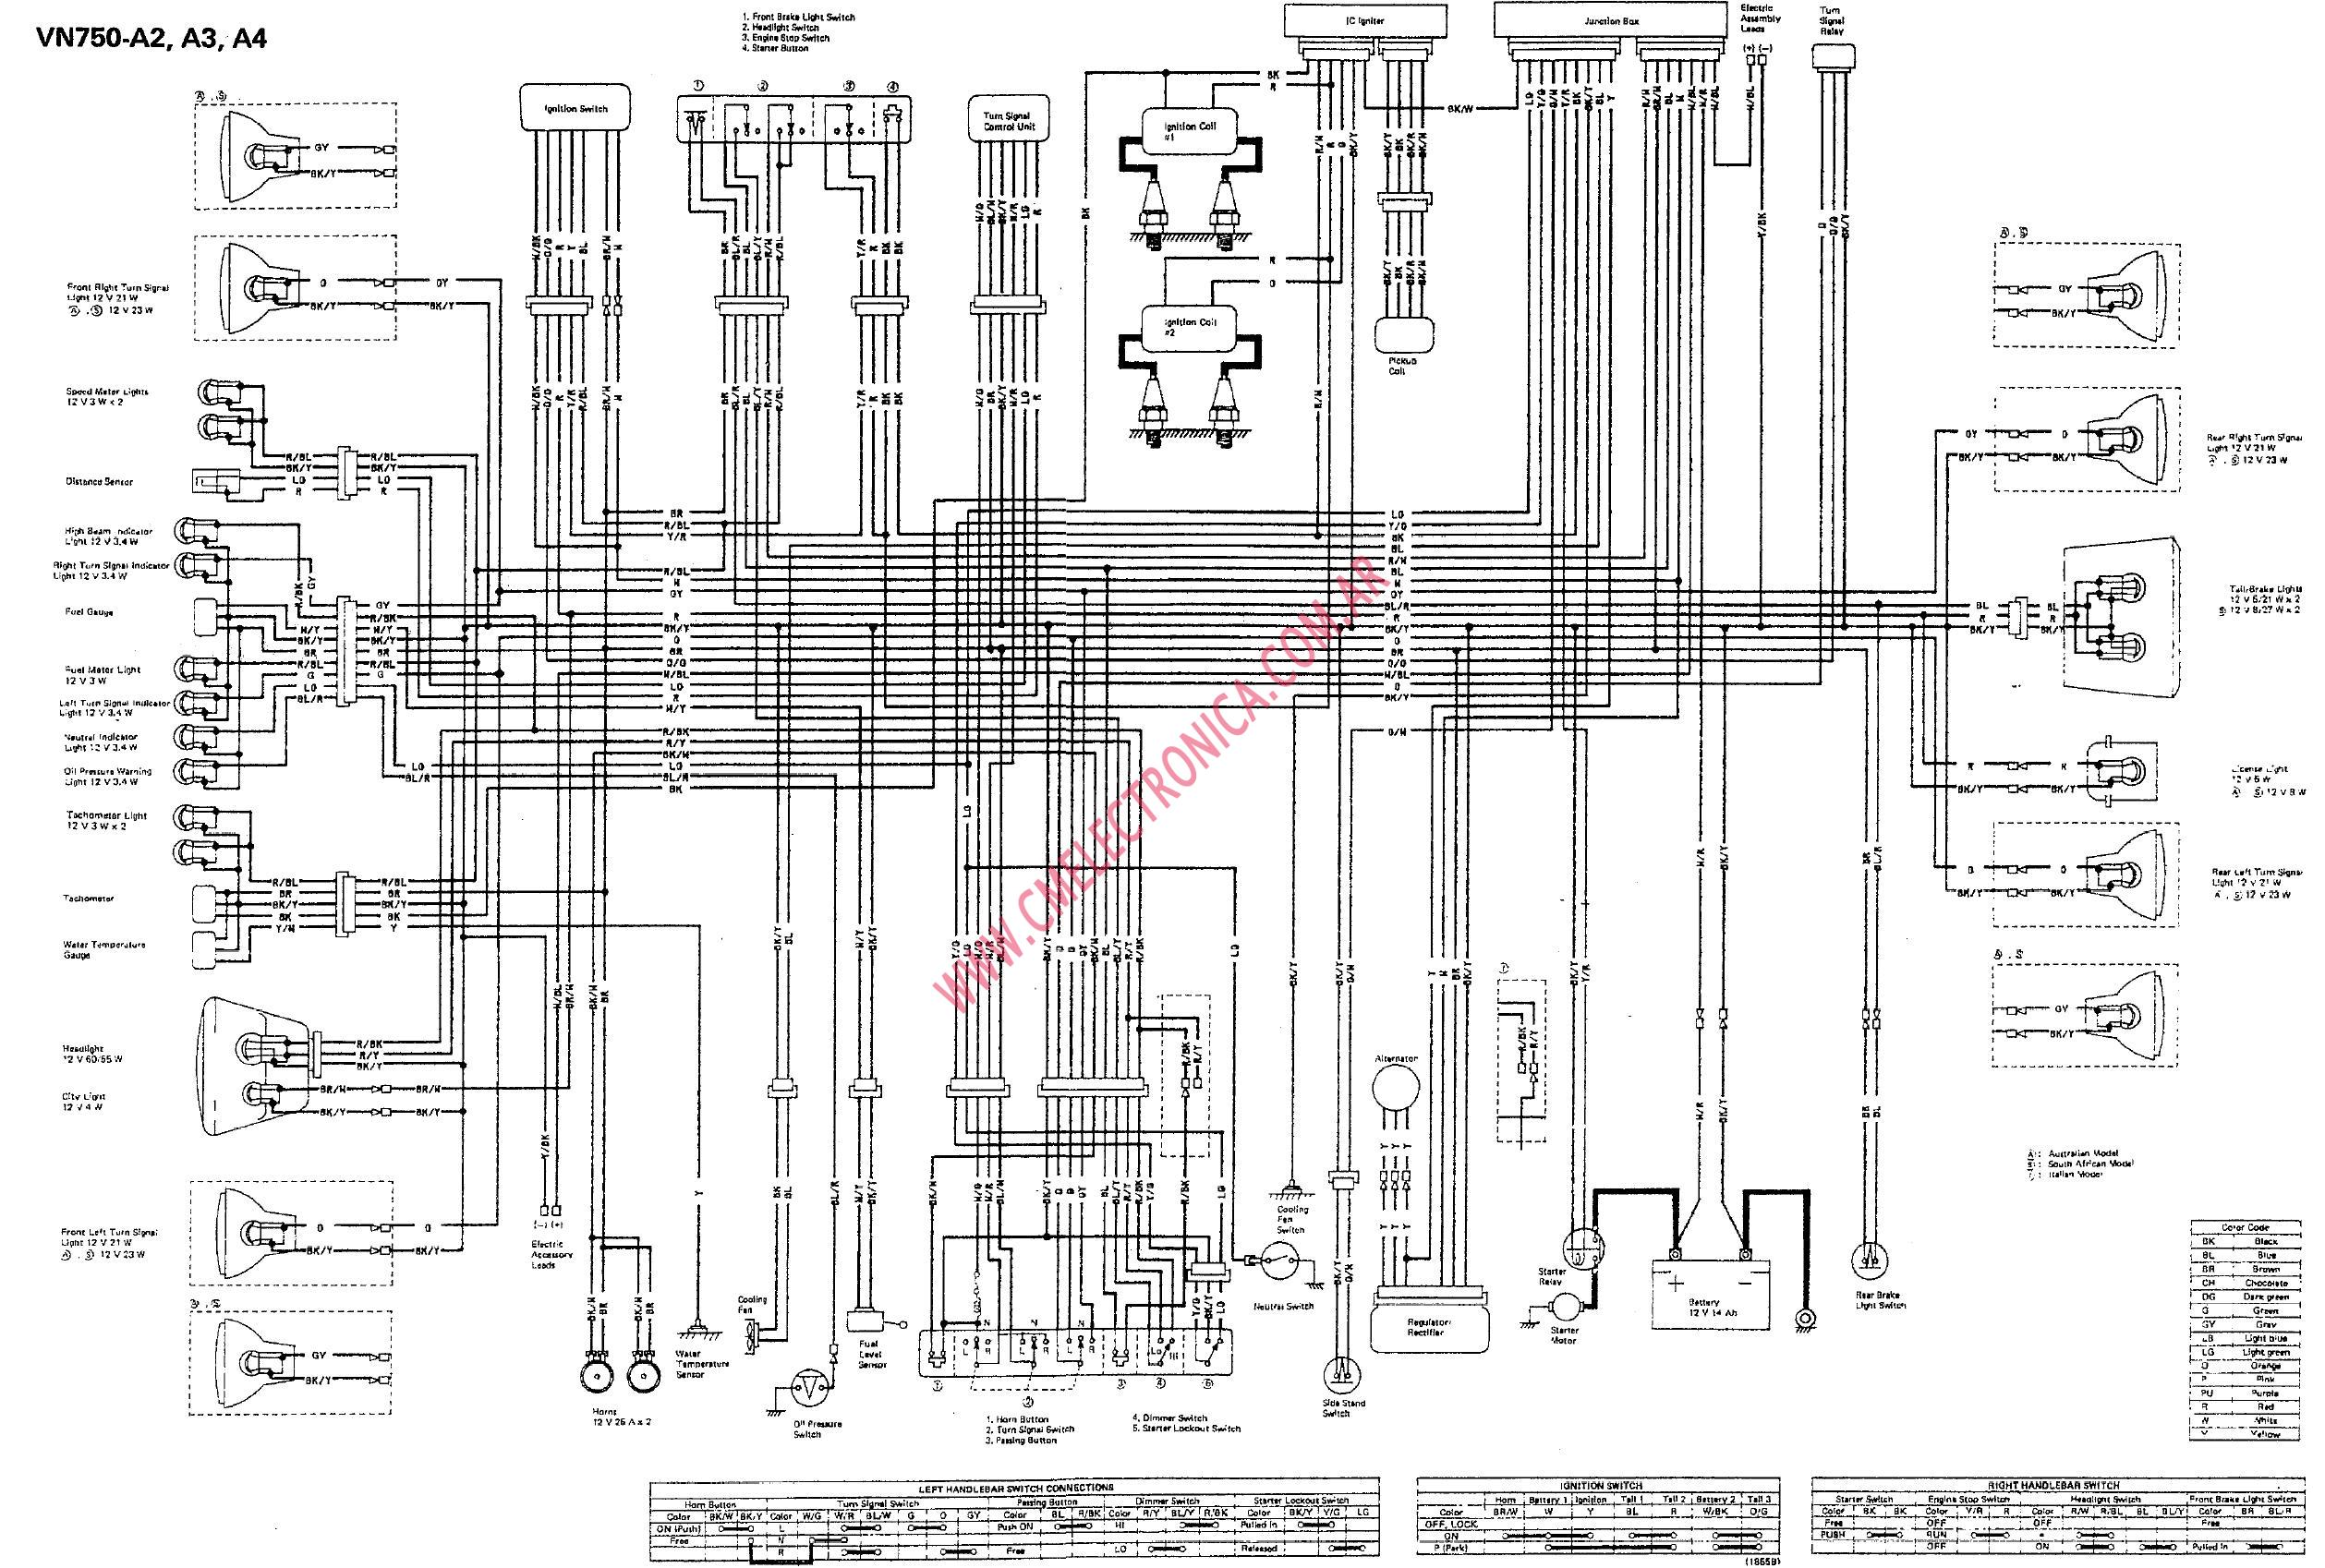 Kawasaki 400 Atv Wiring Diagram Photos For Kawasaki Free Engine Image For User Manual Download